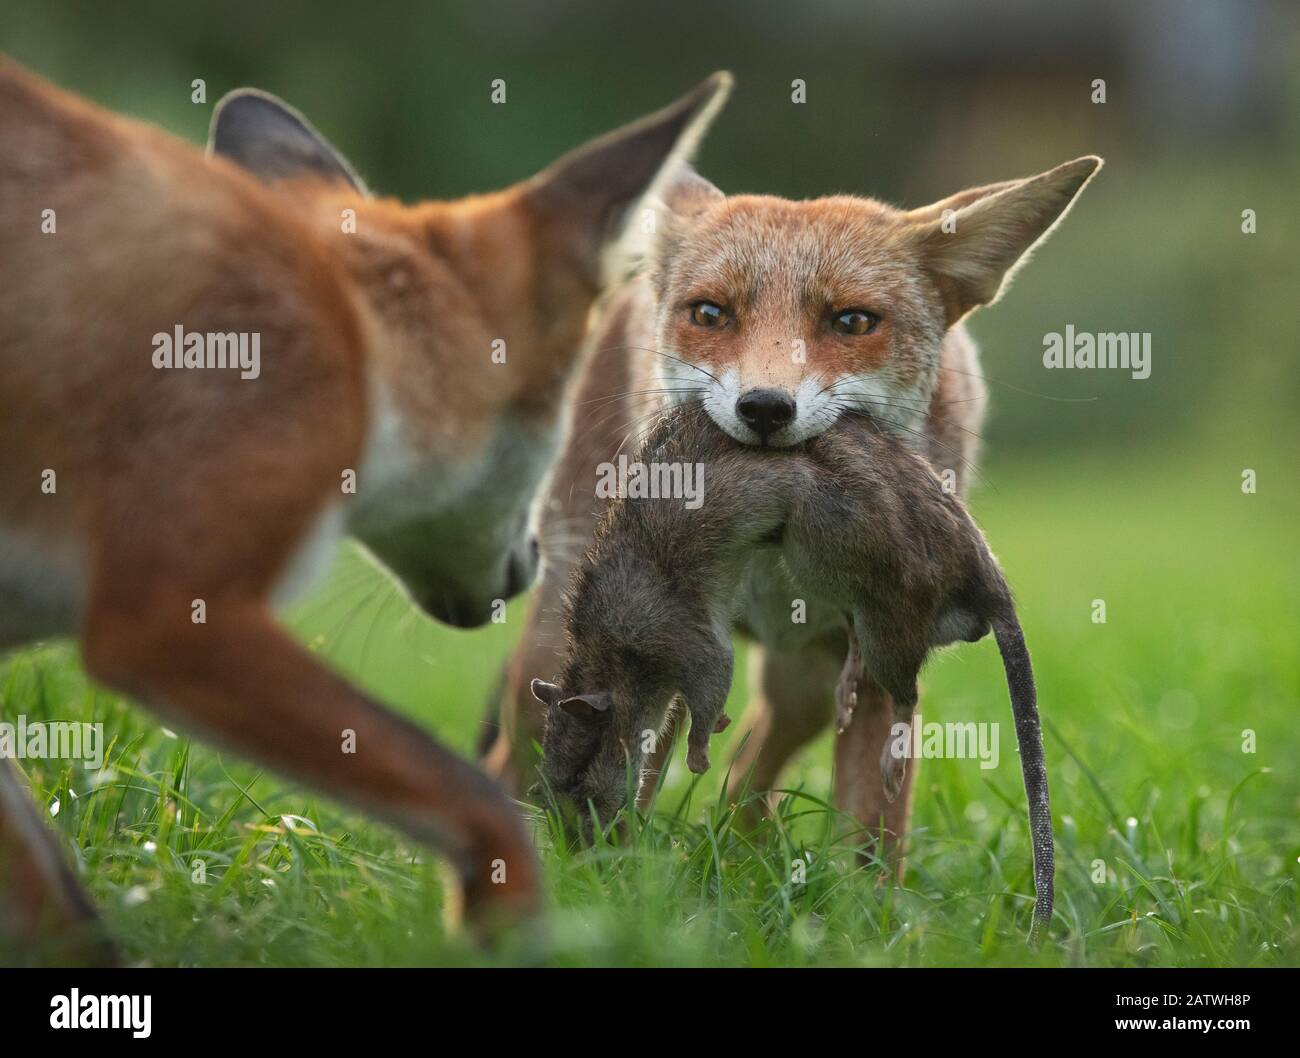 Red fox (Vulpes vulpes) cub defending its kill (a large dead Brown rat (Rattus norvegicus)) from another cub, North London, UK. August. Stock Photo